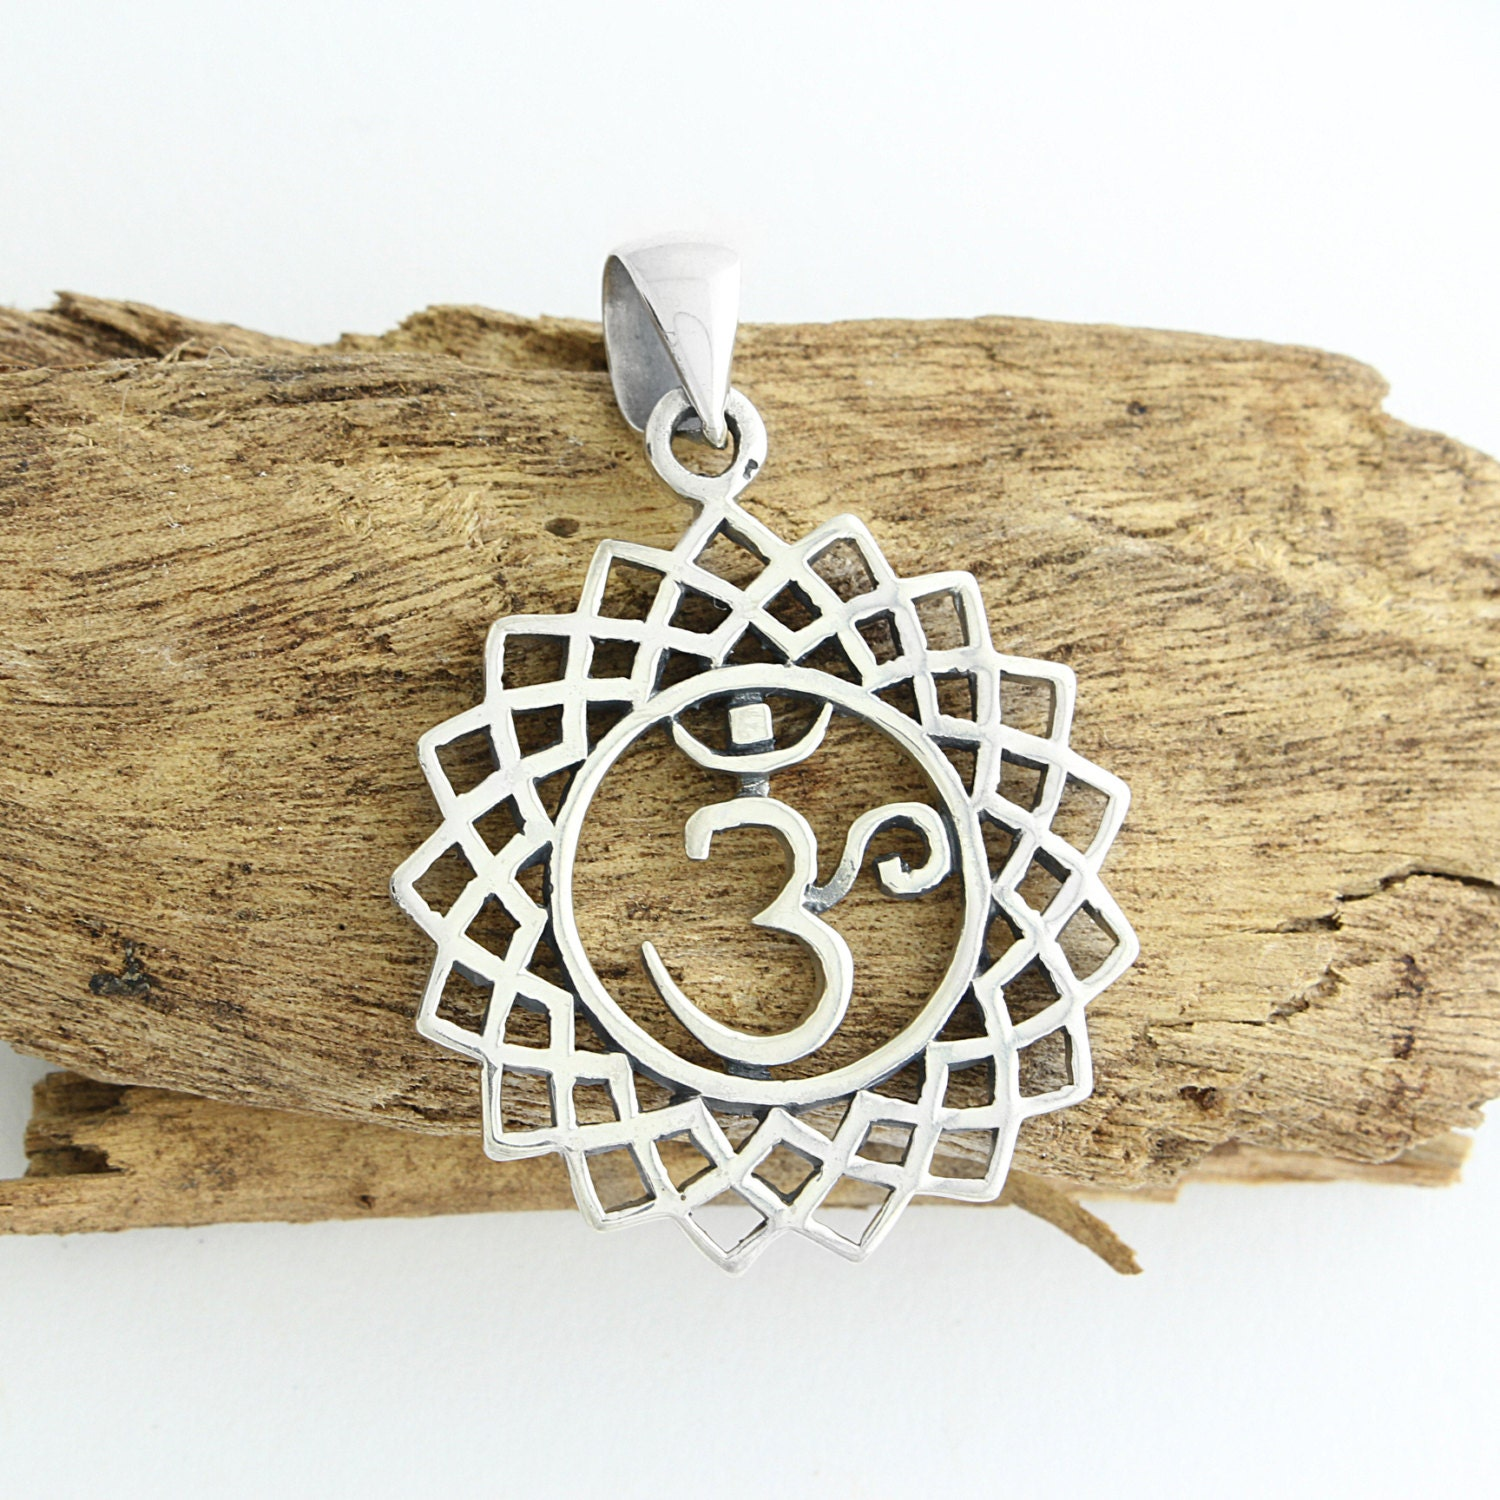 925 Sterling Silver OM AUM Symbol Pendant with Abalone or Natural Shell